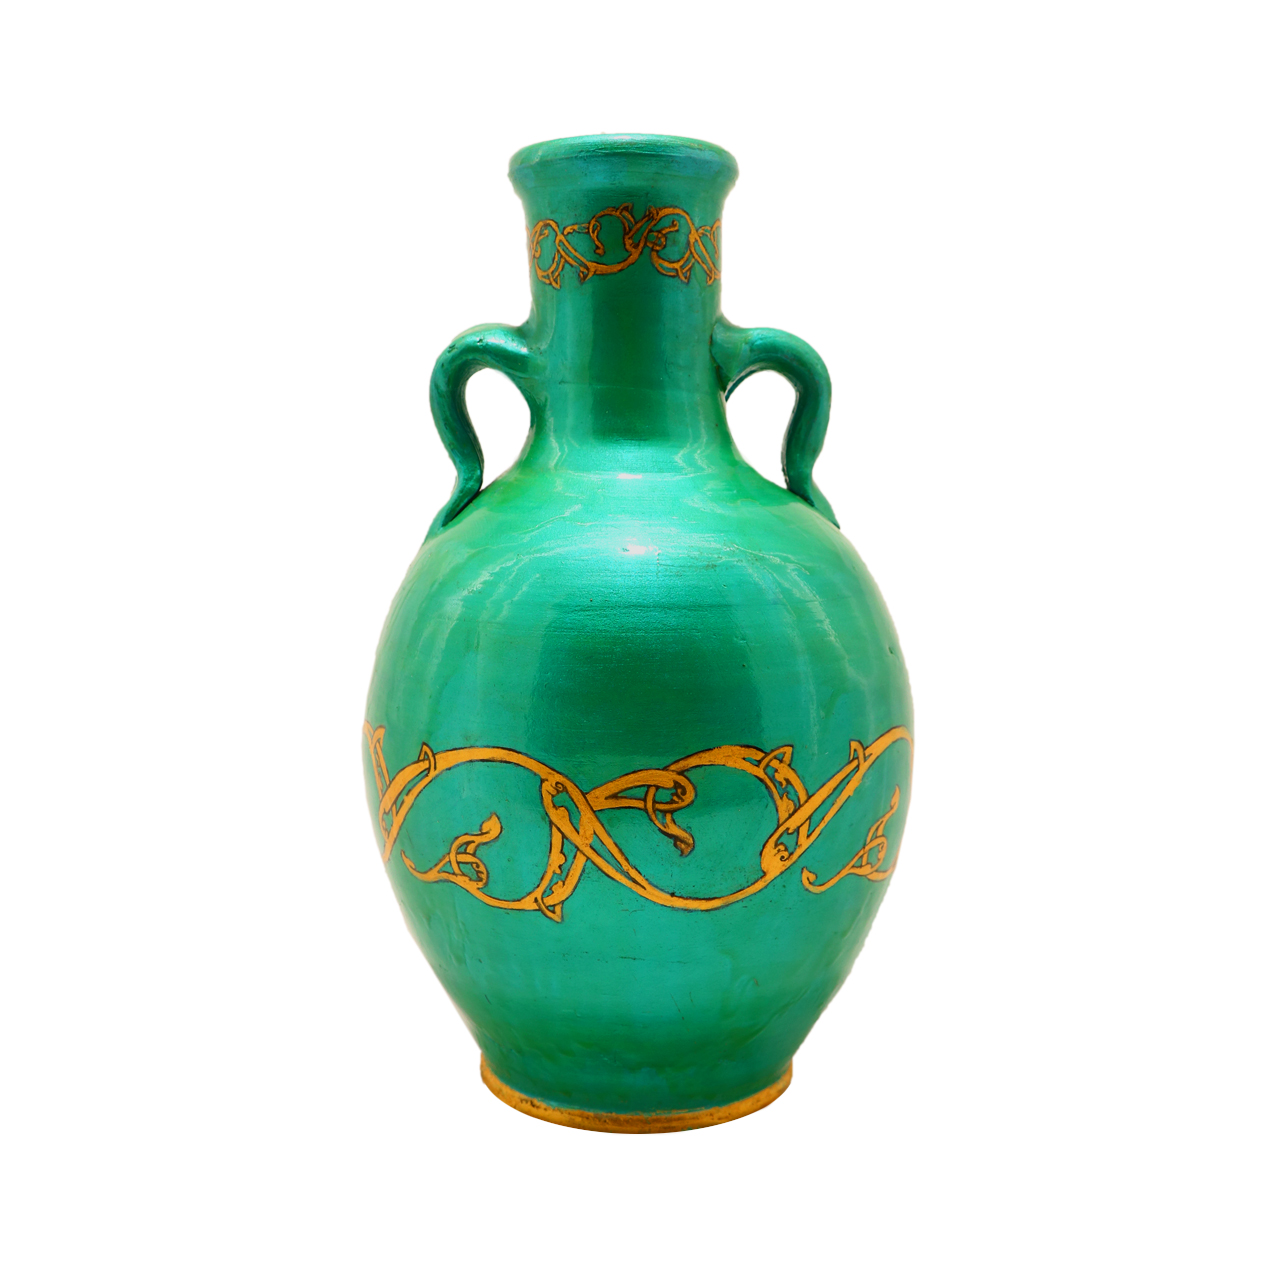 Earthenware-jug